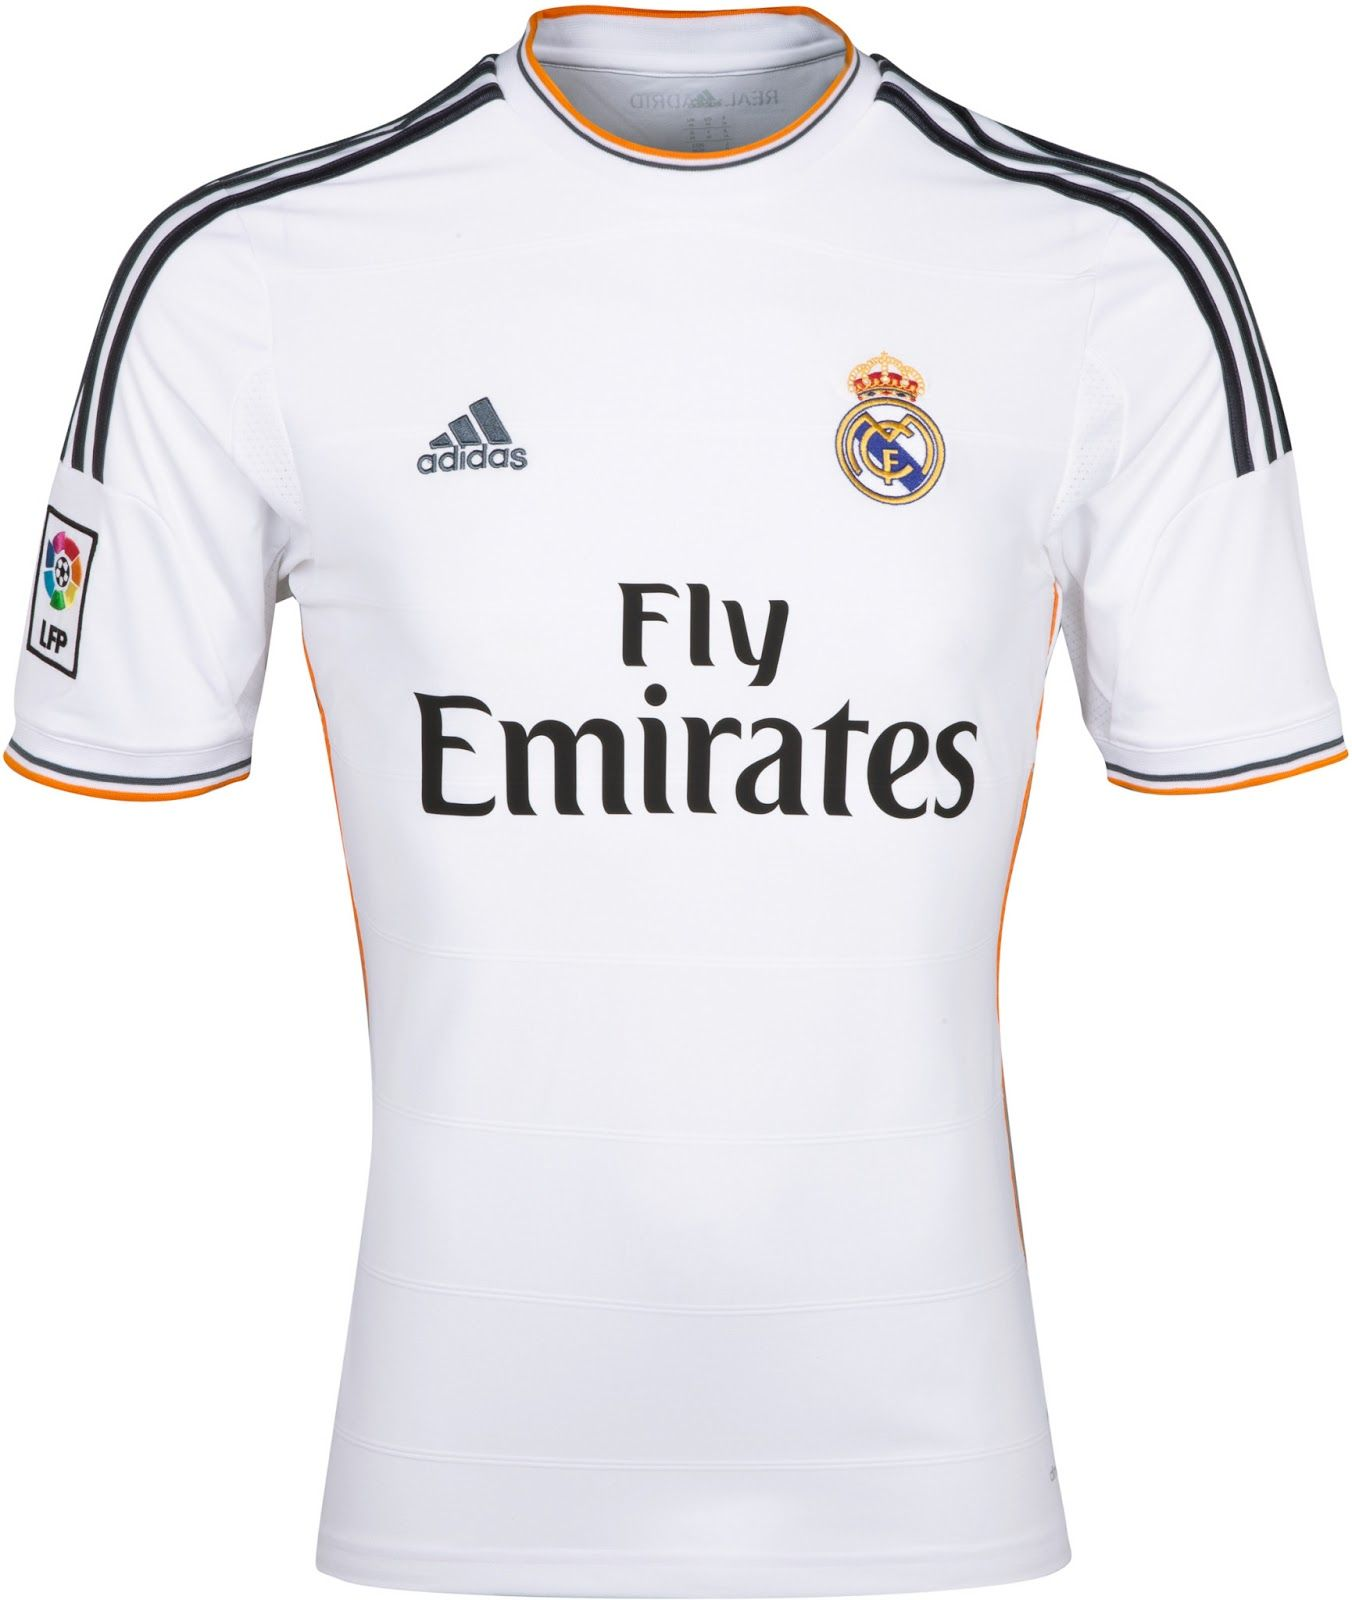 Camiseta Real Madrid. maillot Real Madrid 2013 2014 ... b8e4ef848